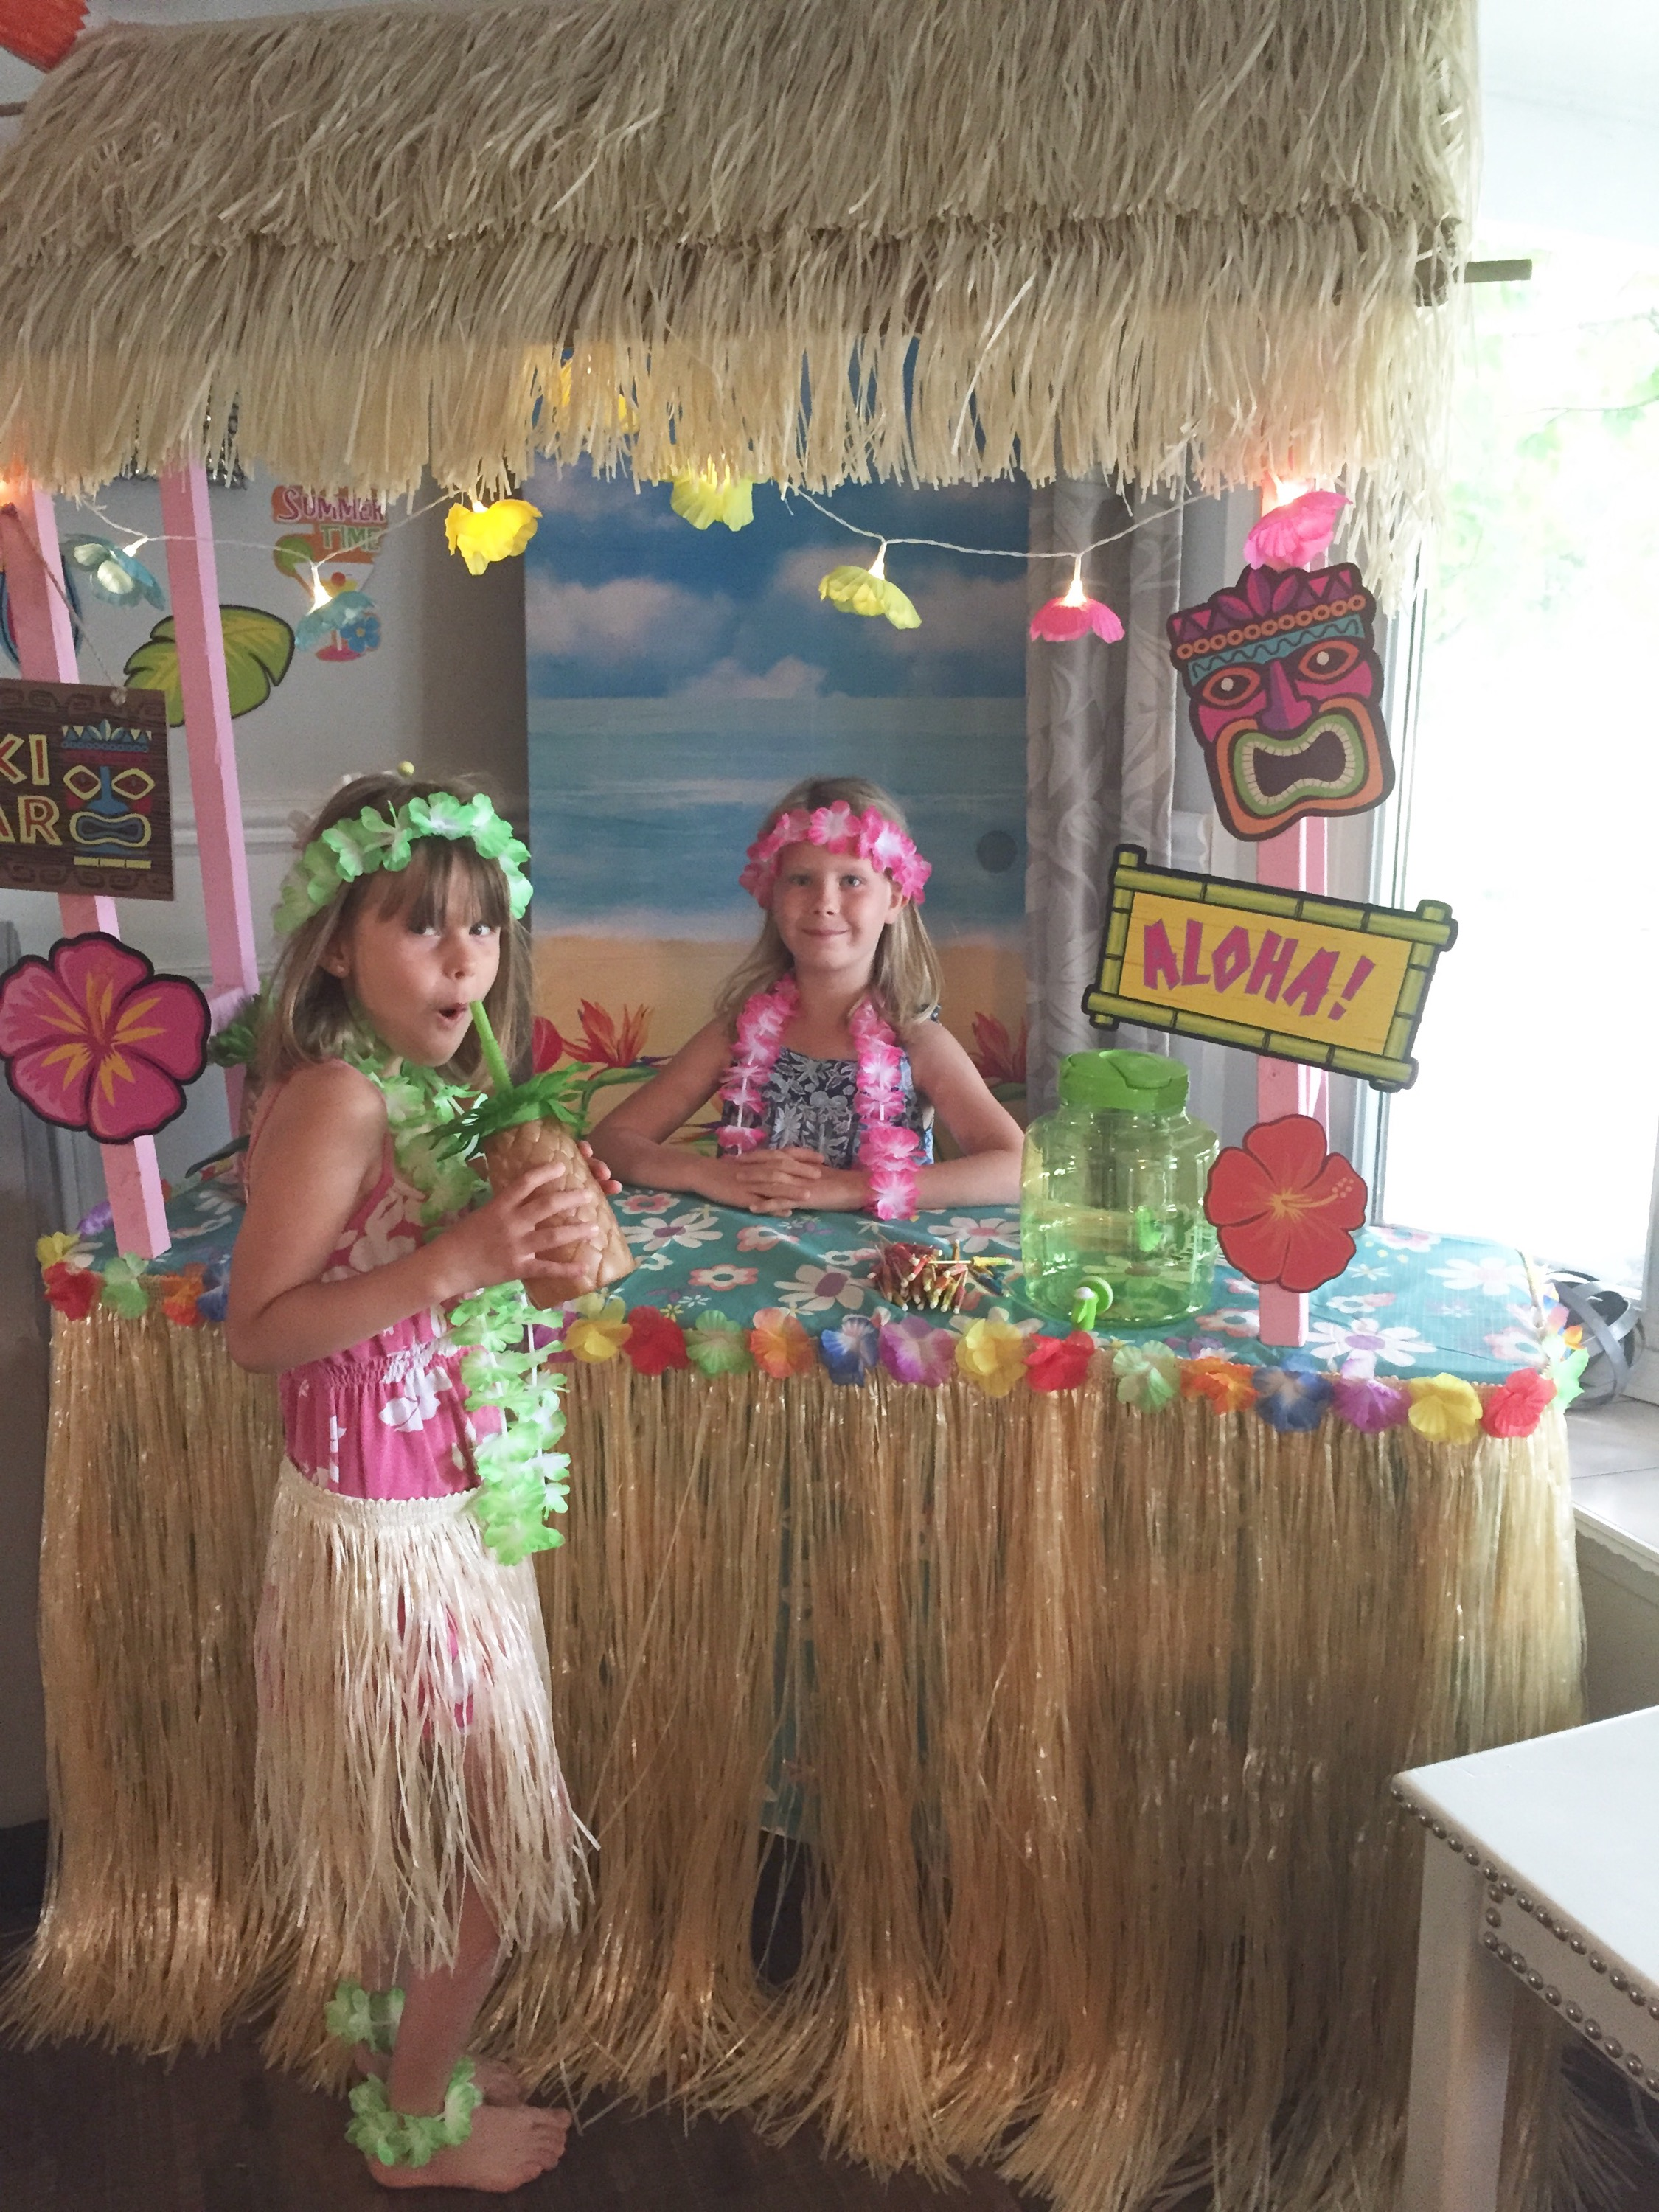 Luau birthday party a purdy little house for How to make luau decorations at home